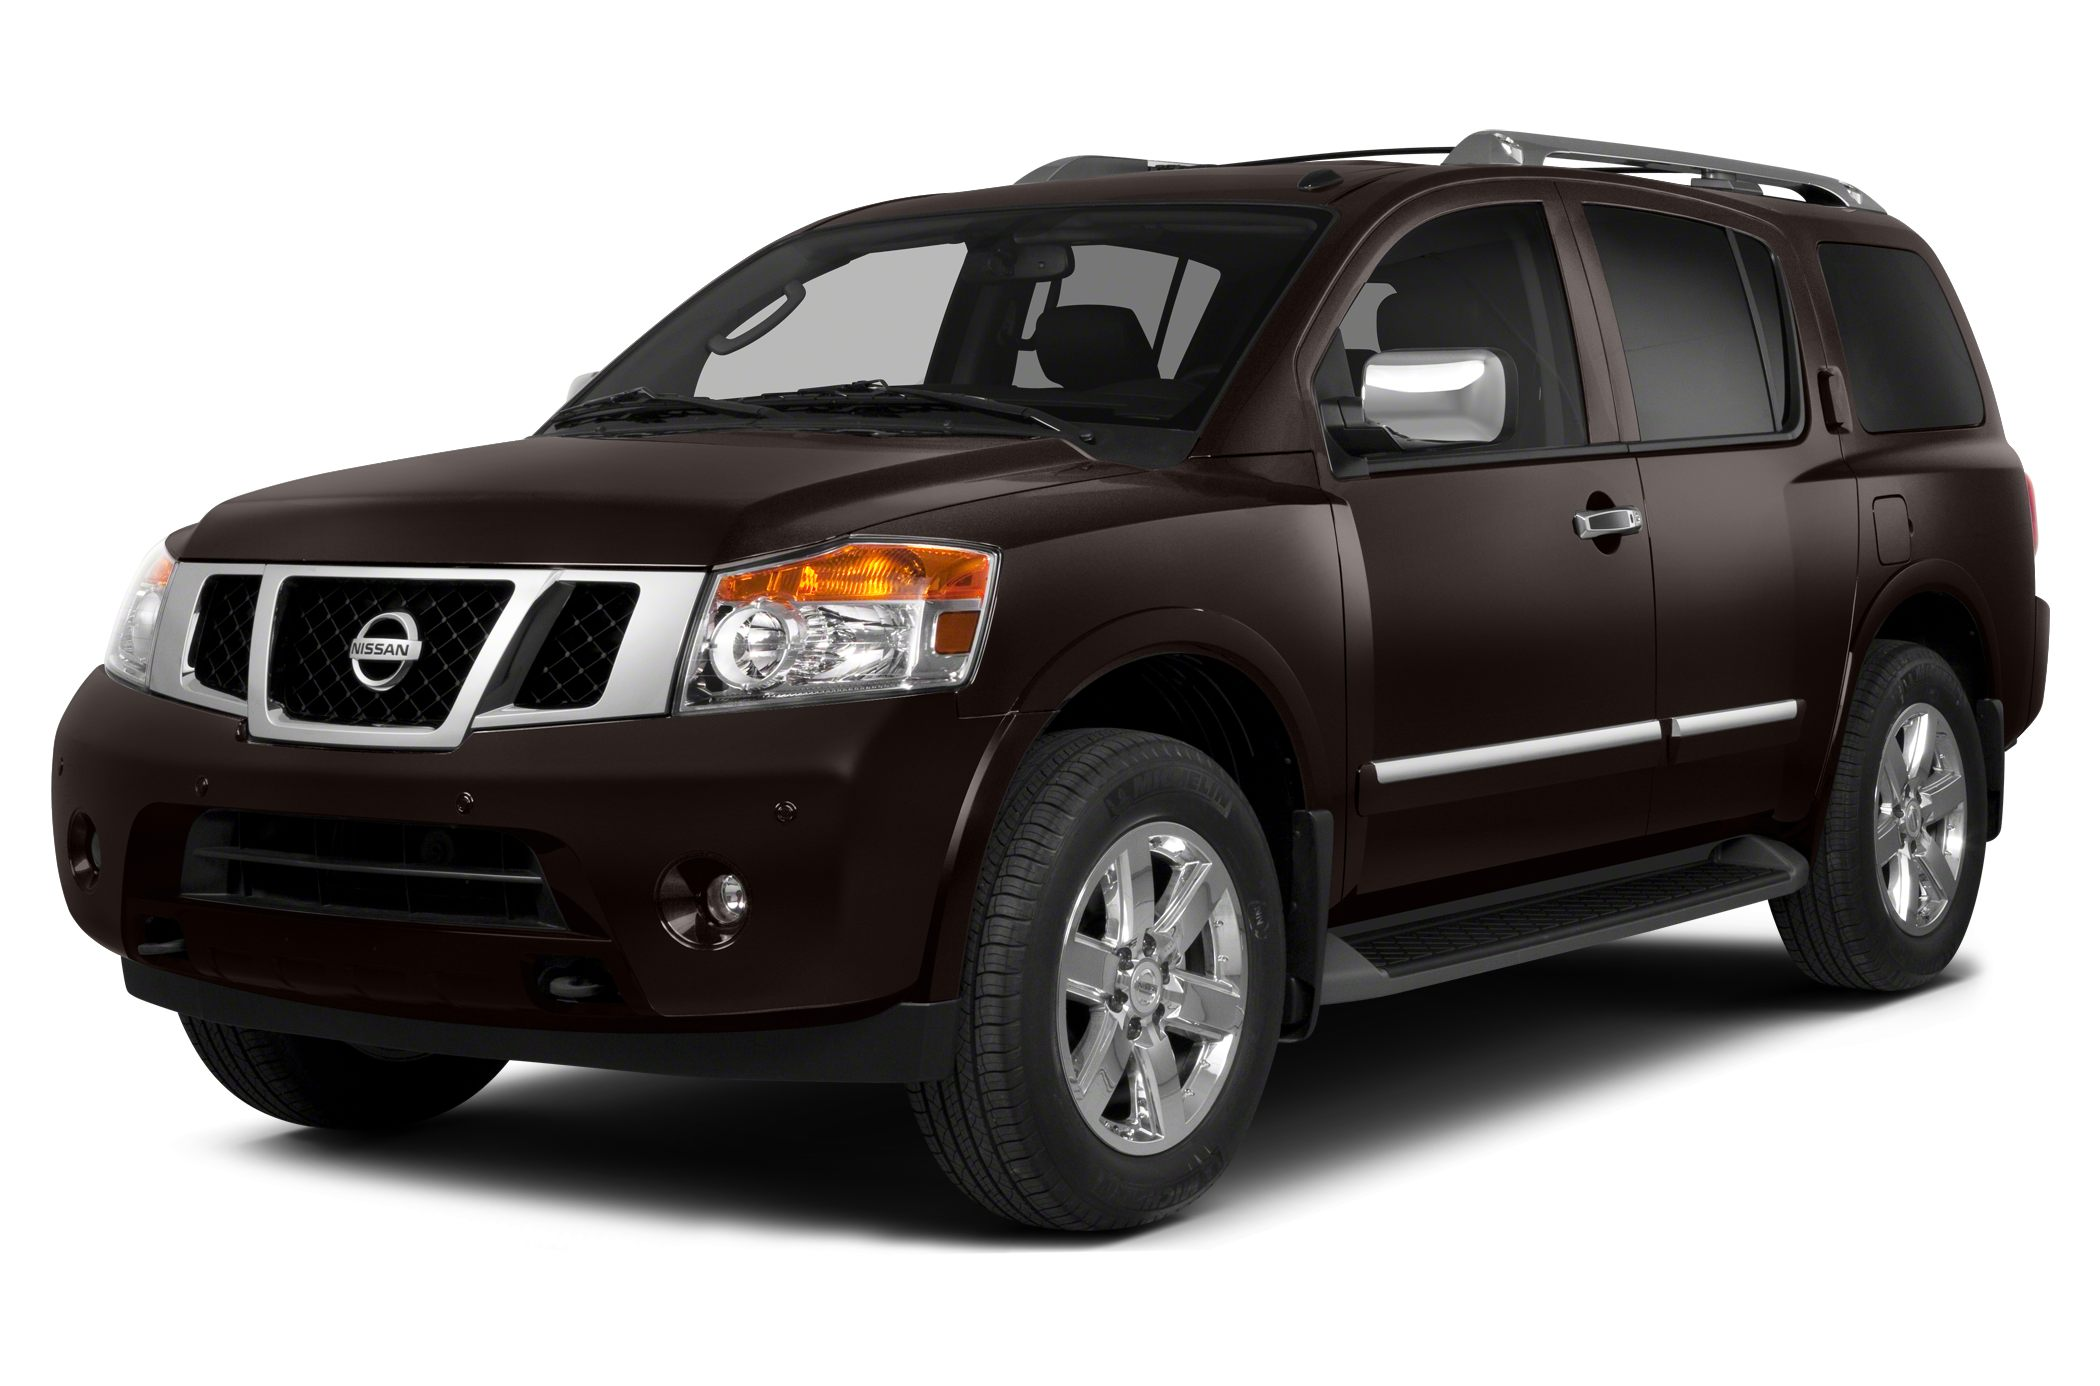 2014 Nissan Armada SL Built on a muscular and fully boxed steel frame thats capable of handling ex